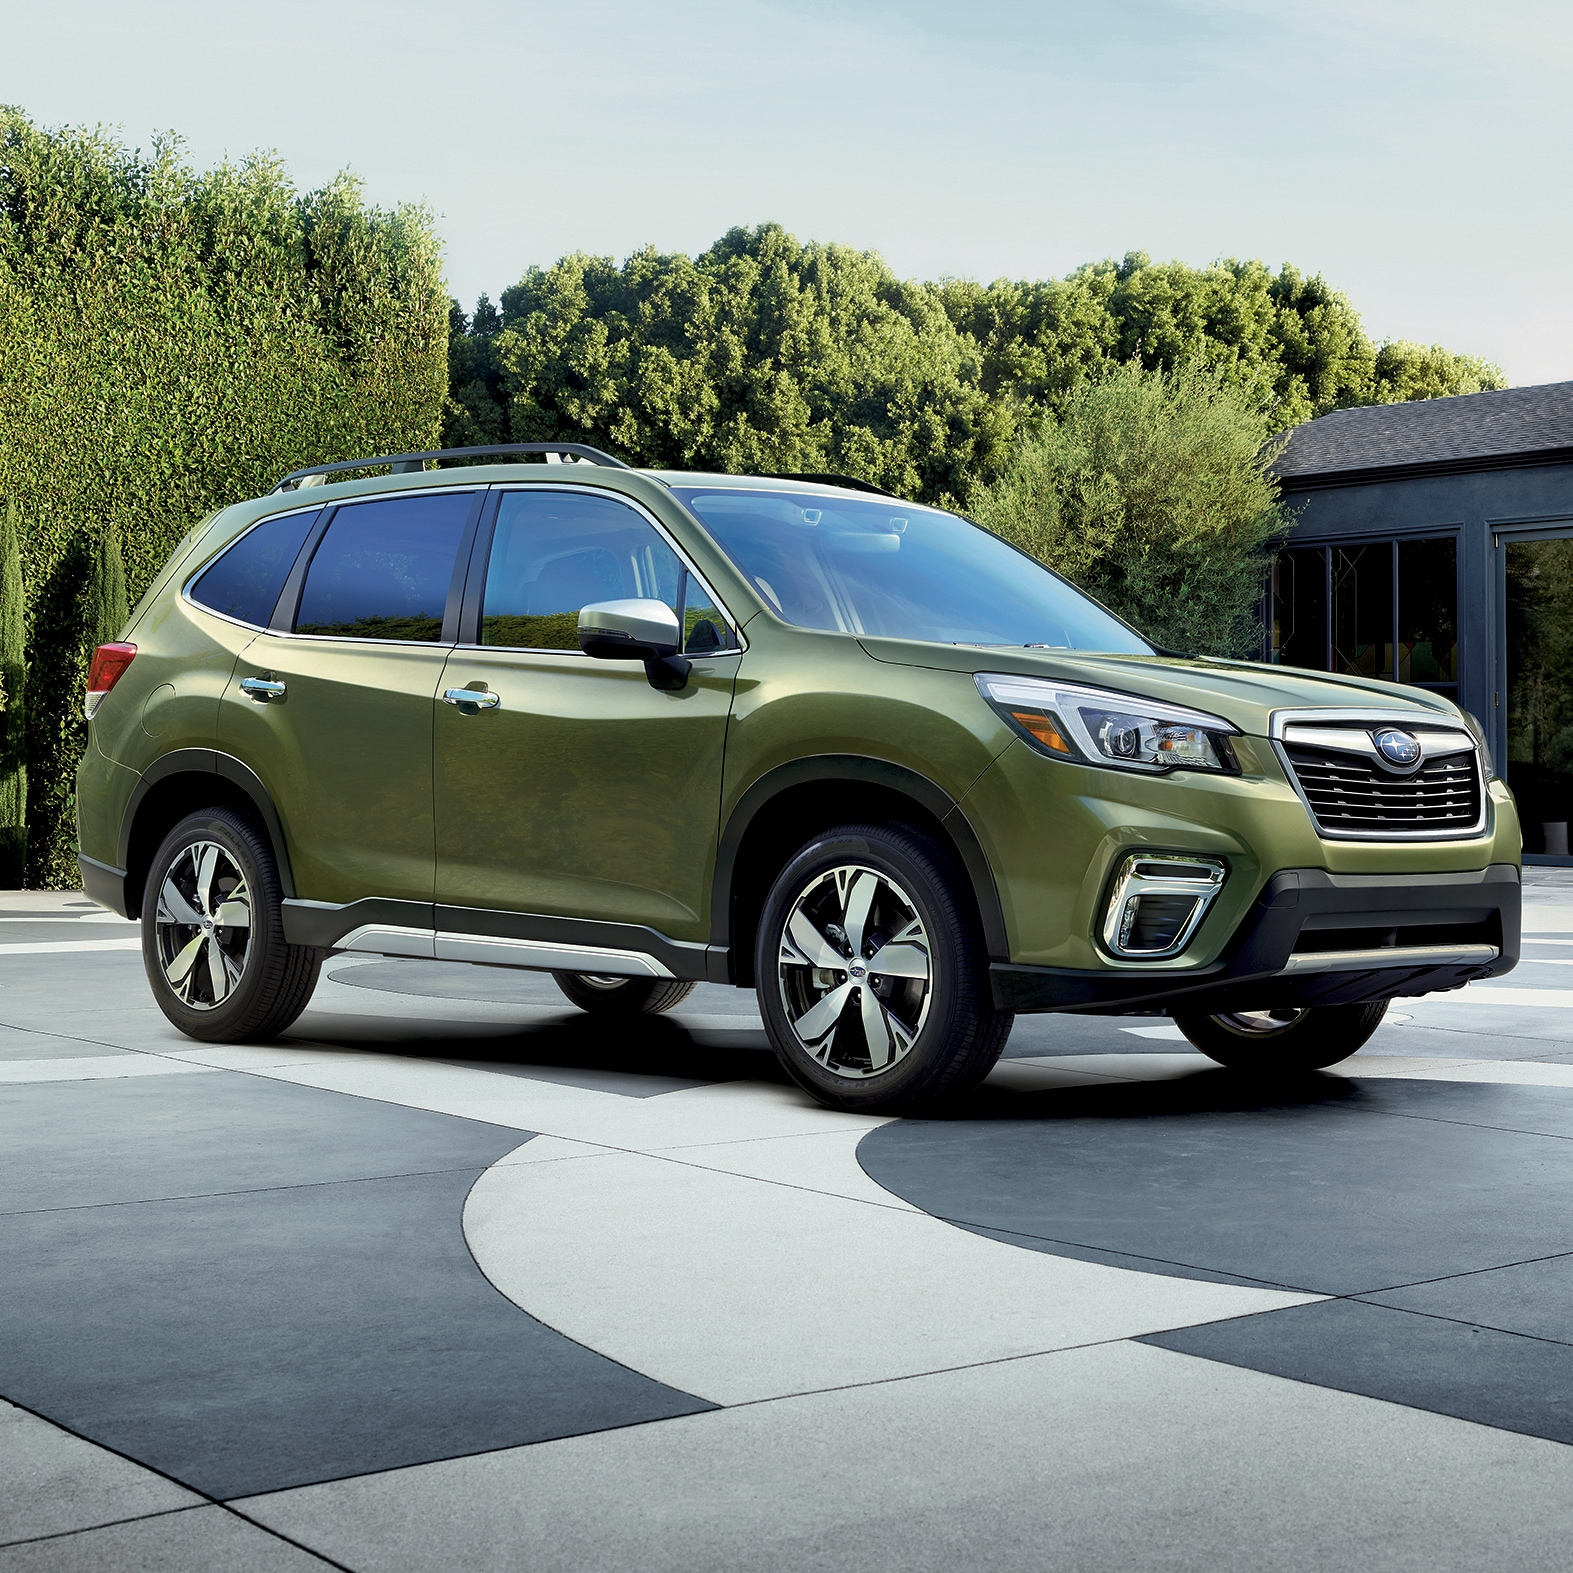 2019 Subaru Forester Fuel Efficiency